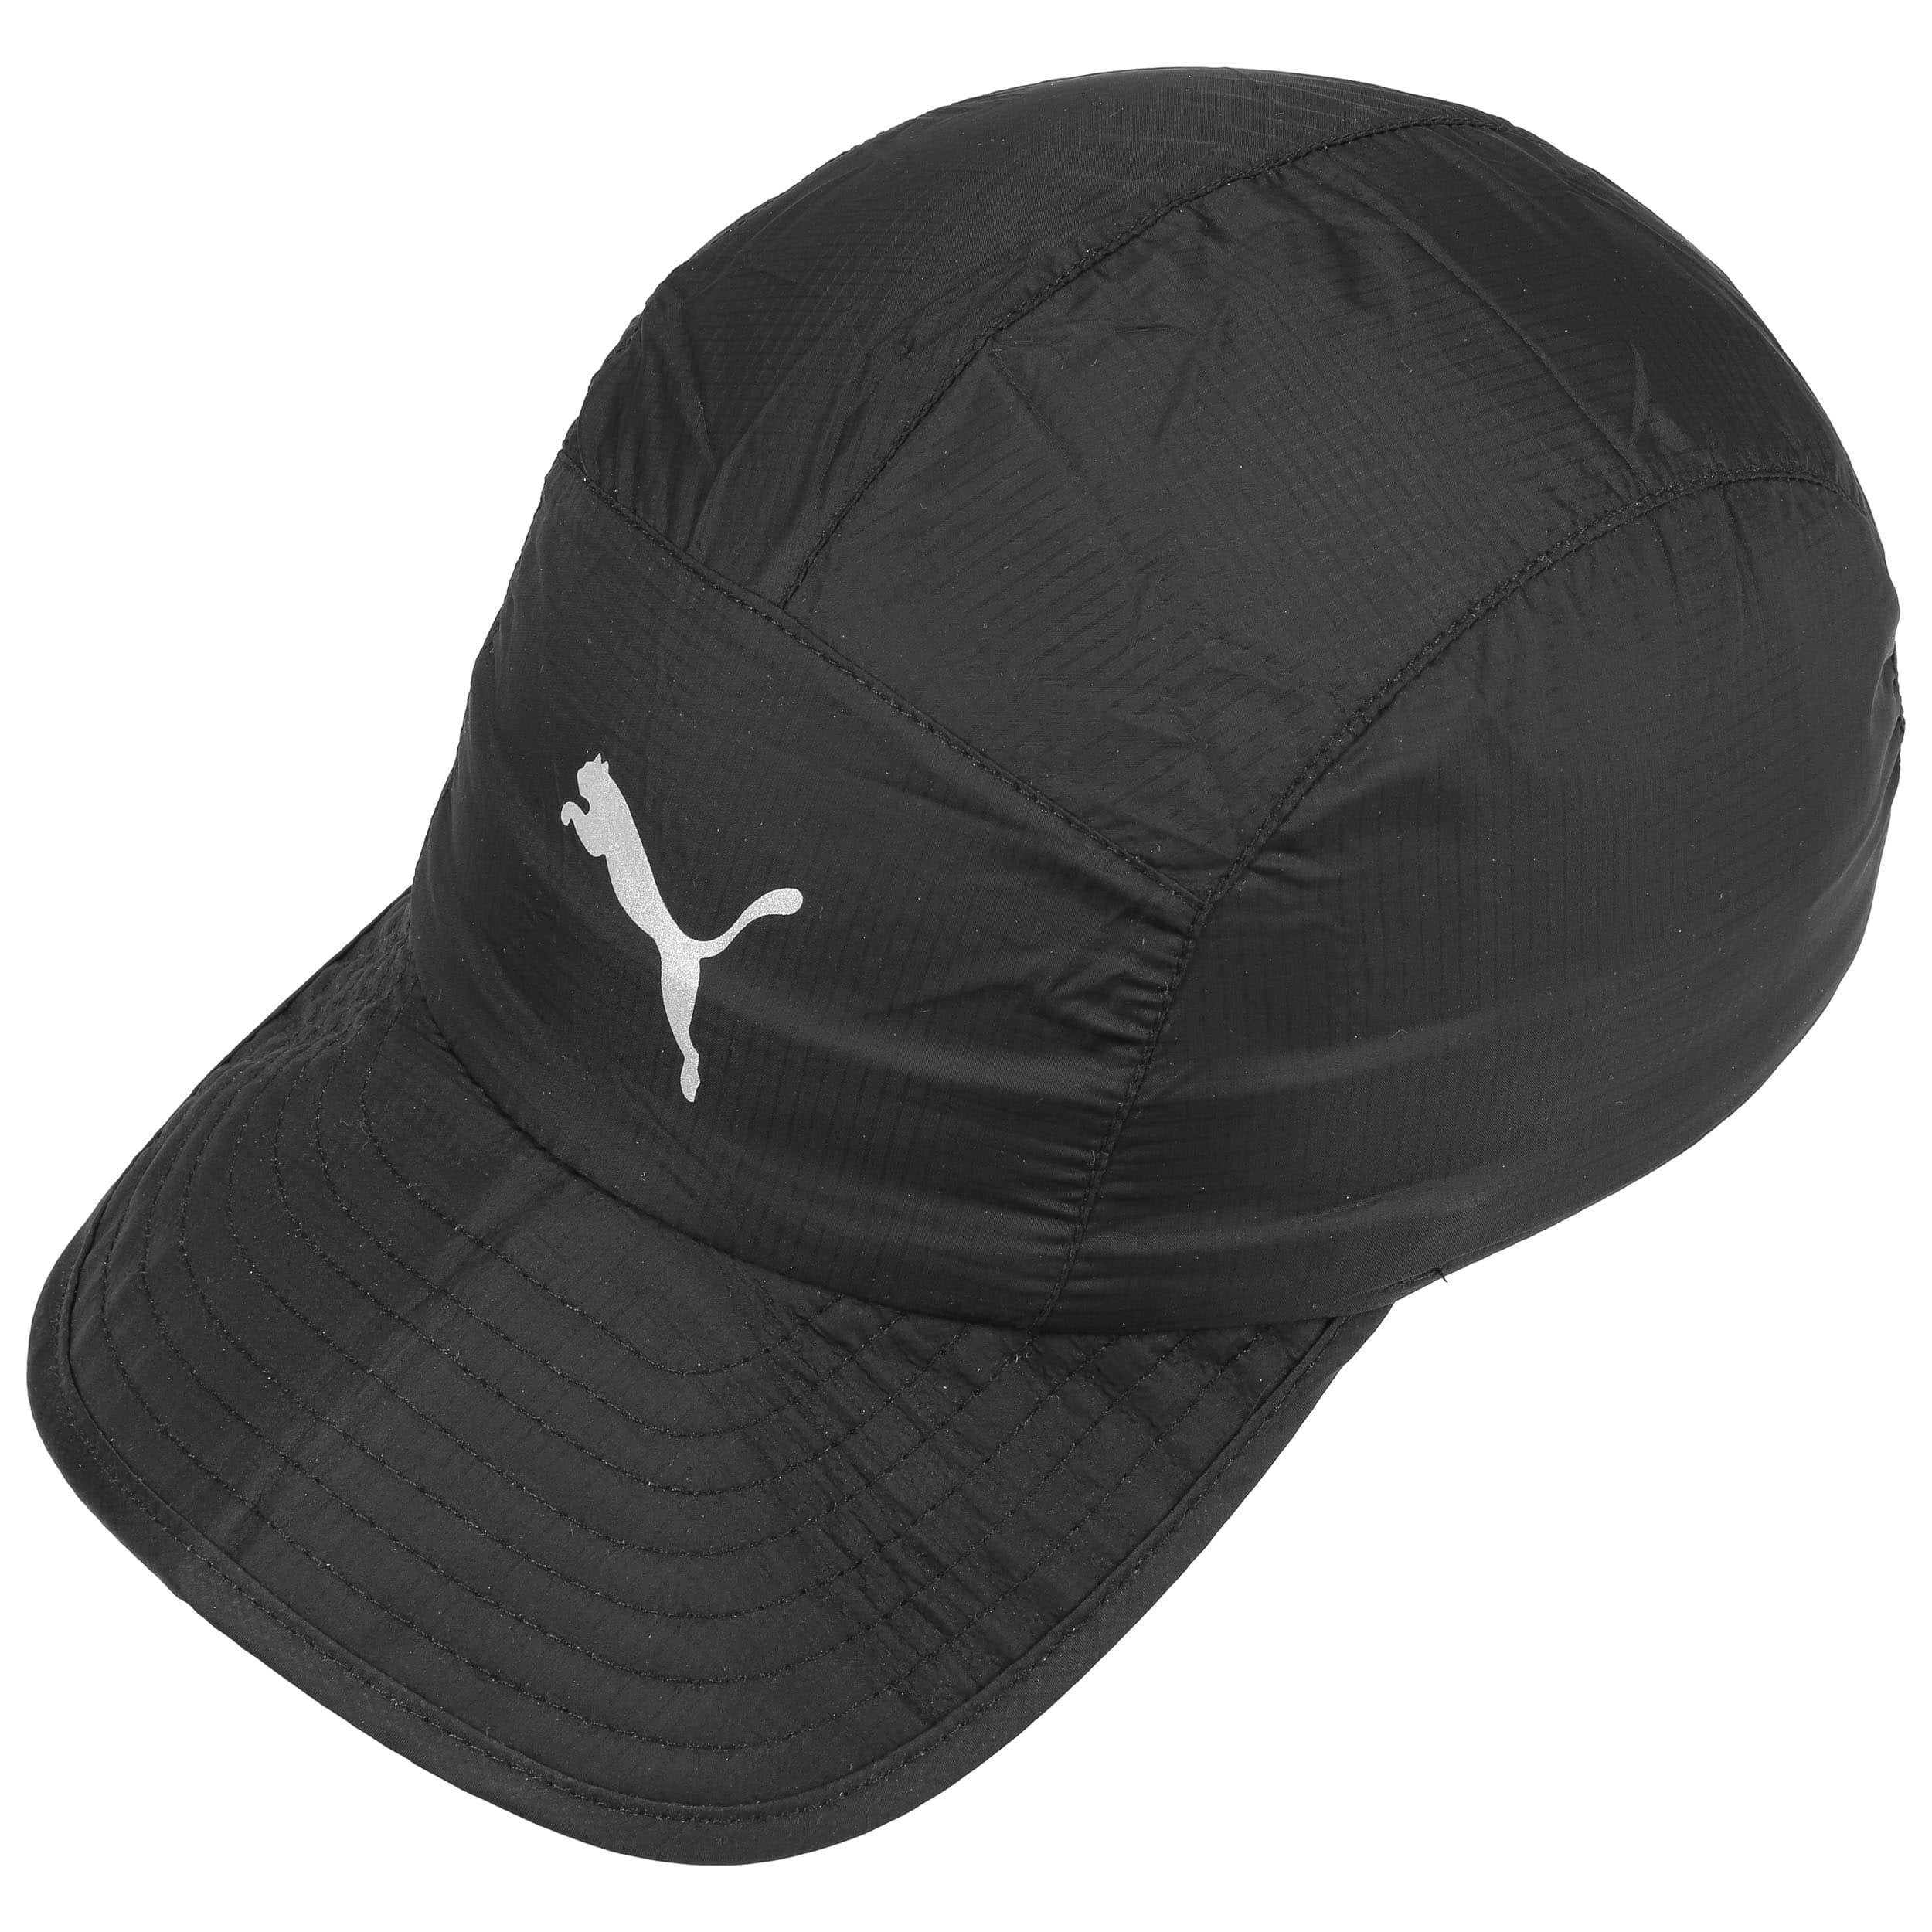 Packable Running Performance Cap by PUMA - black 1 ... 653f98dec87